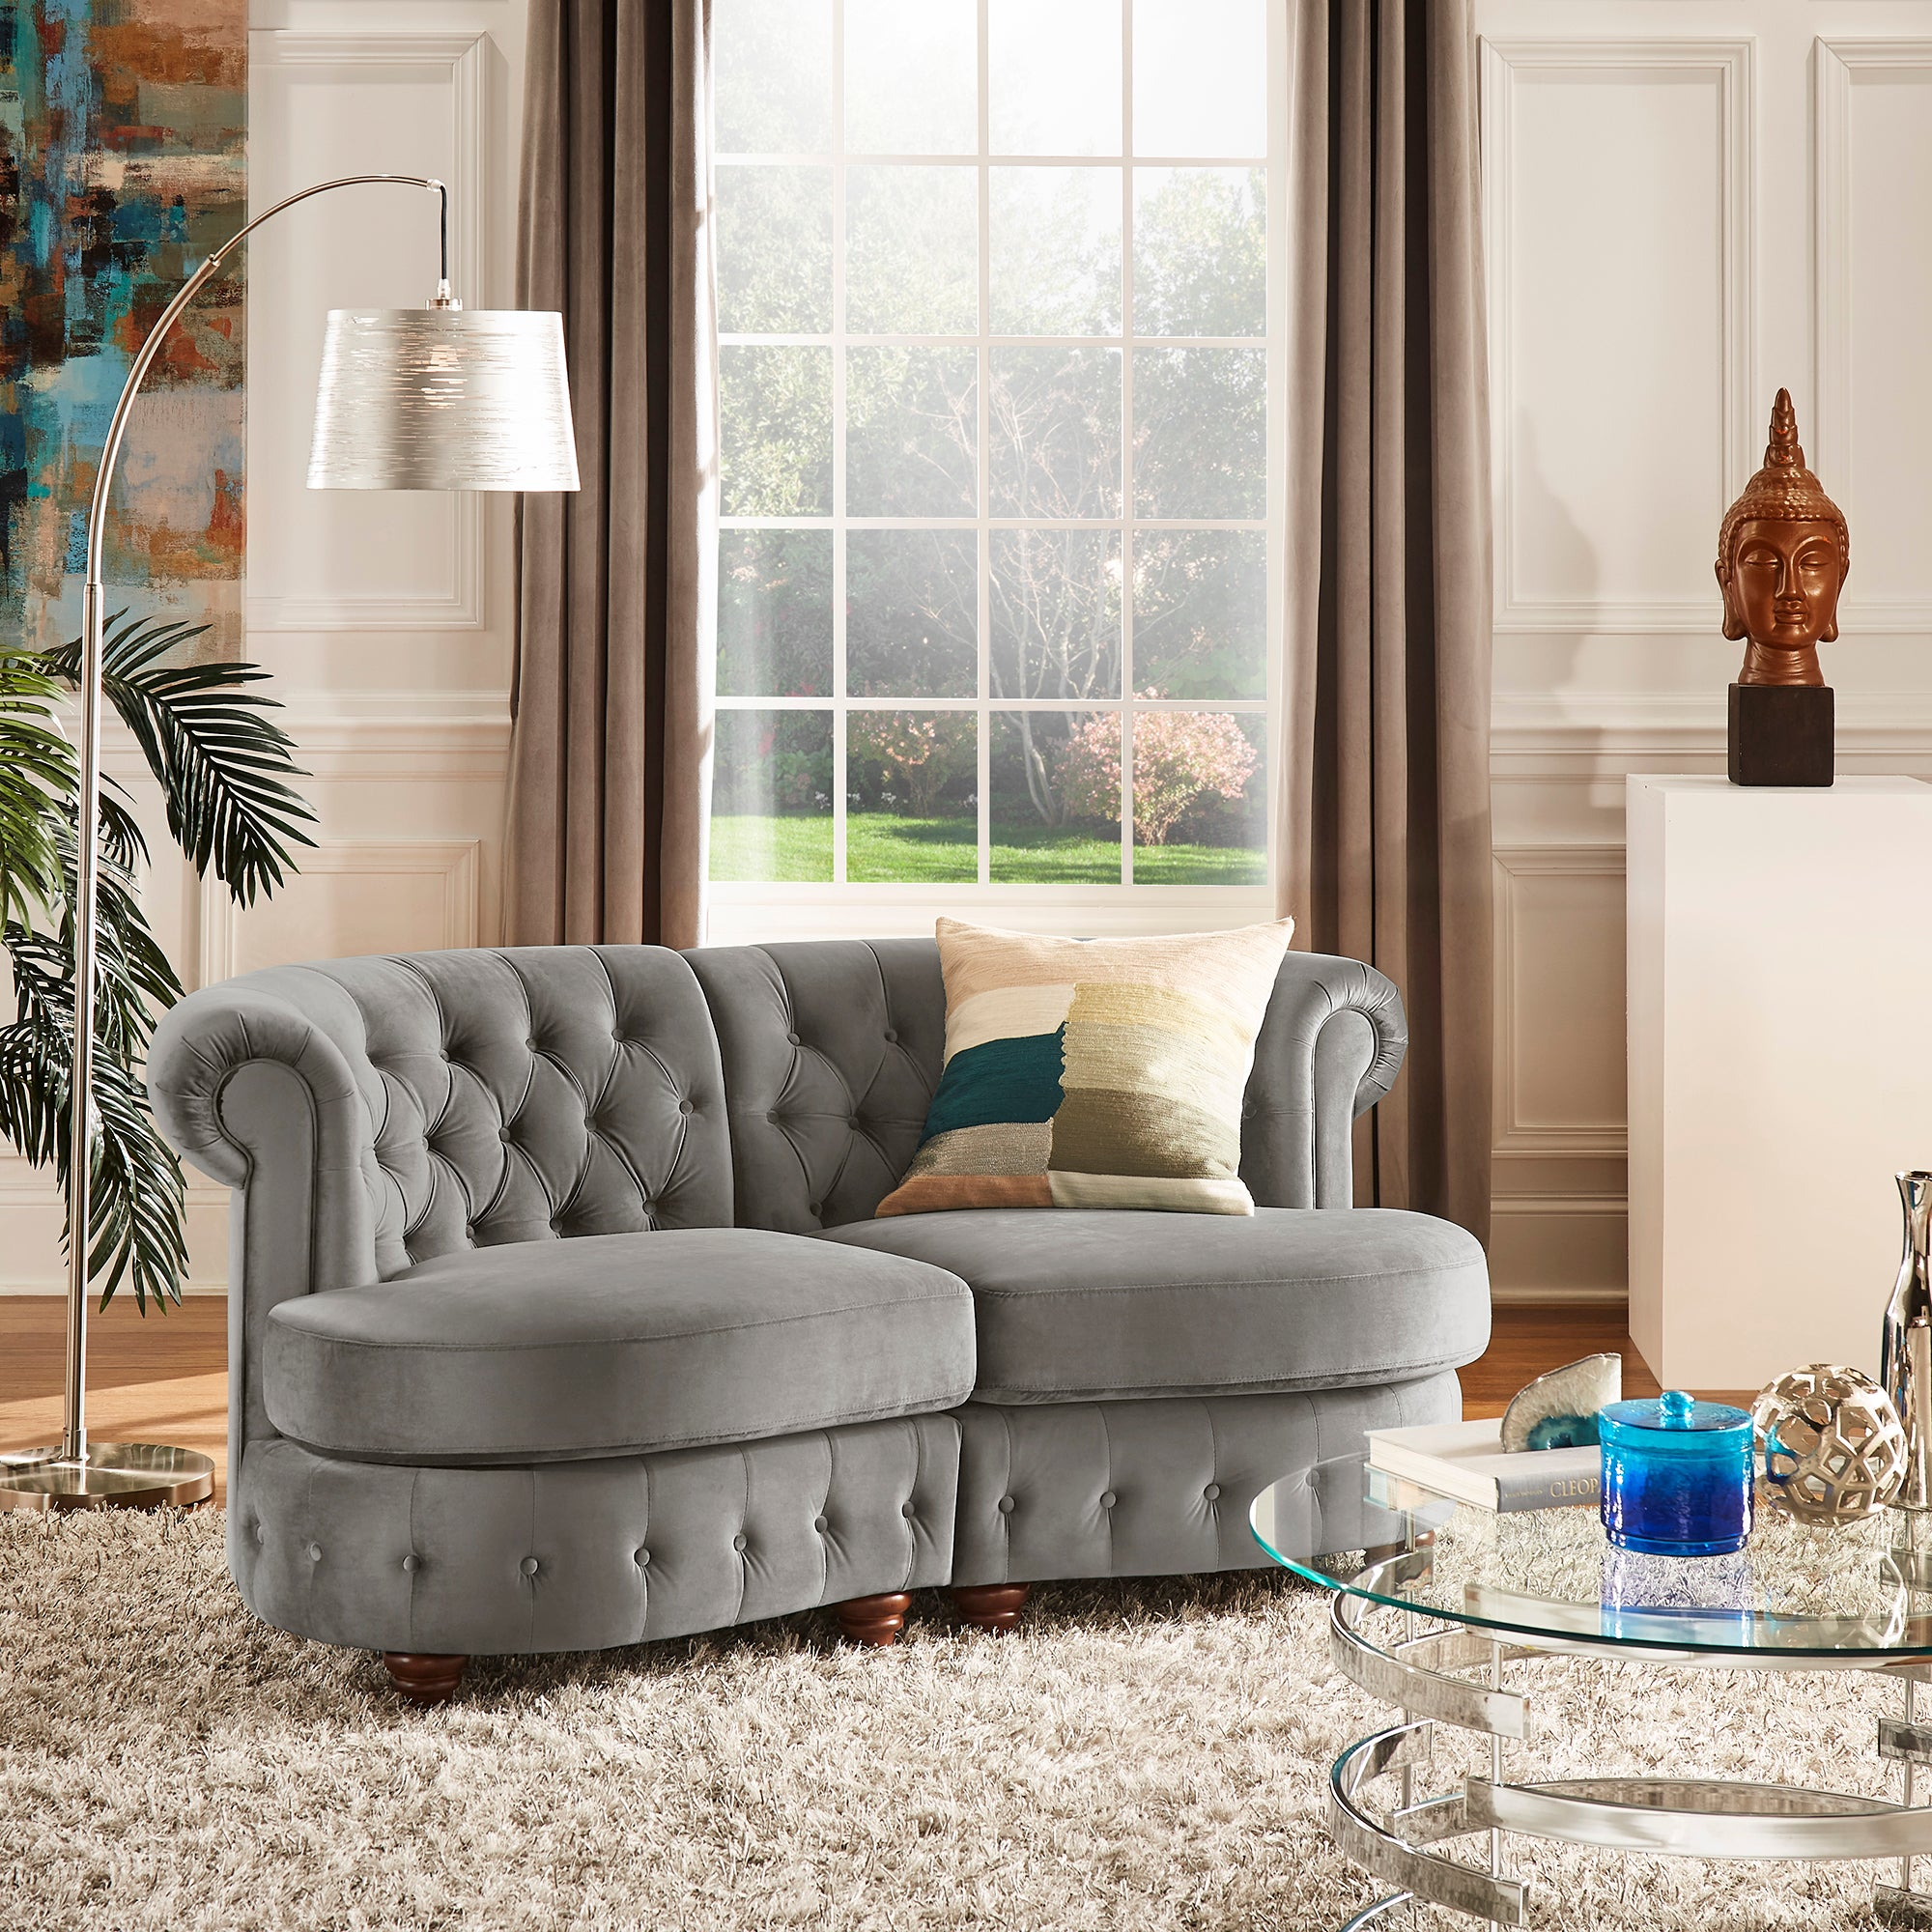 Velvet Tufted Scroll Arm Chesterfield Curved Loveseat - Grey